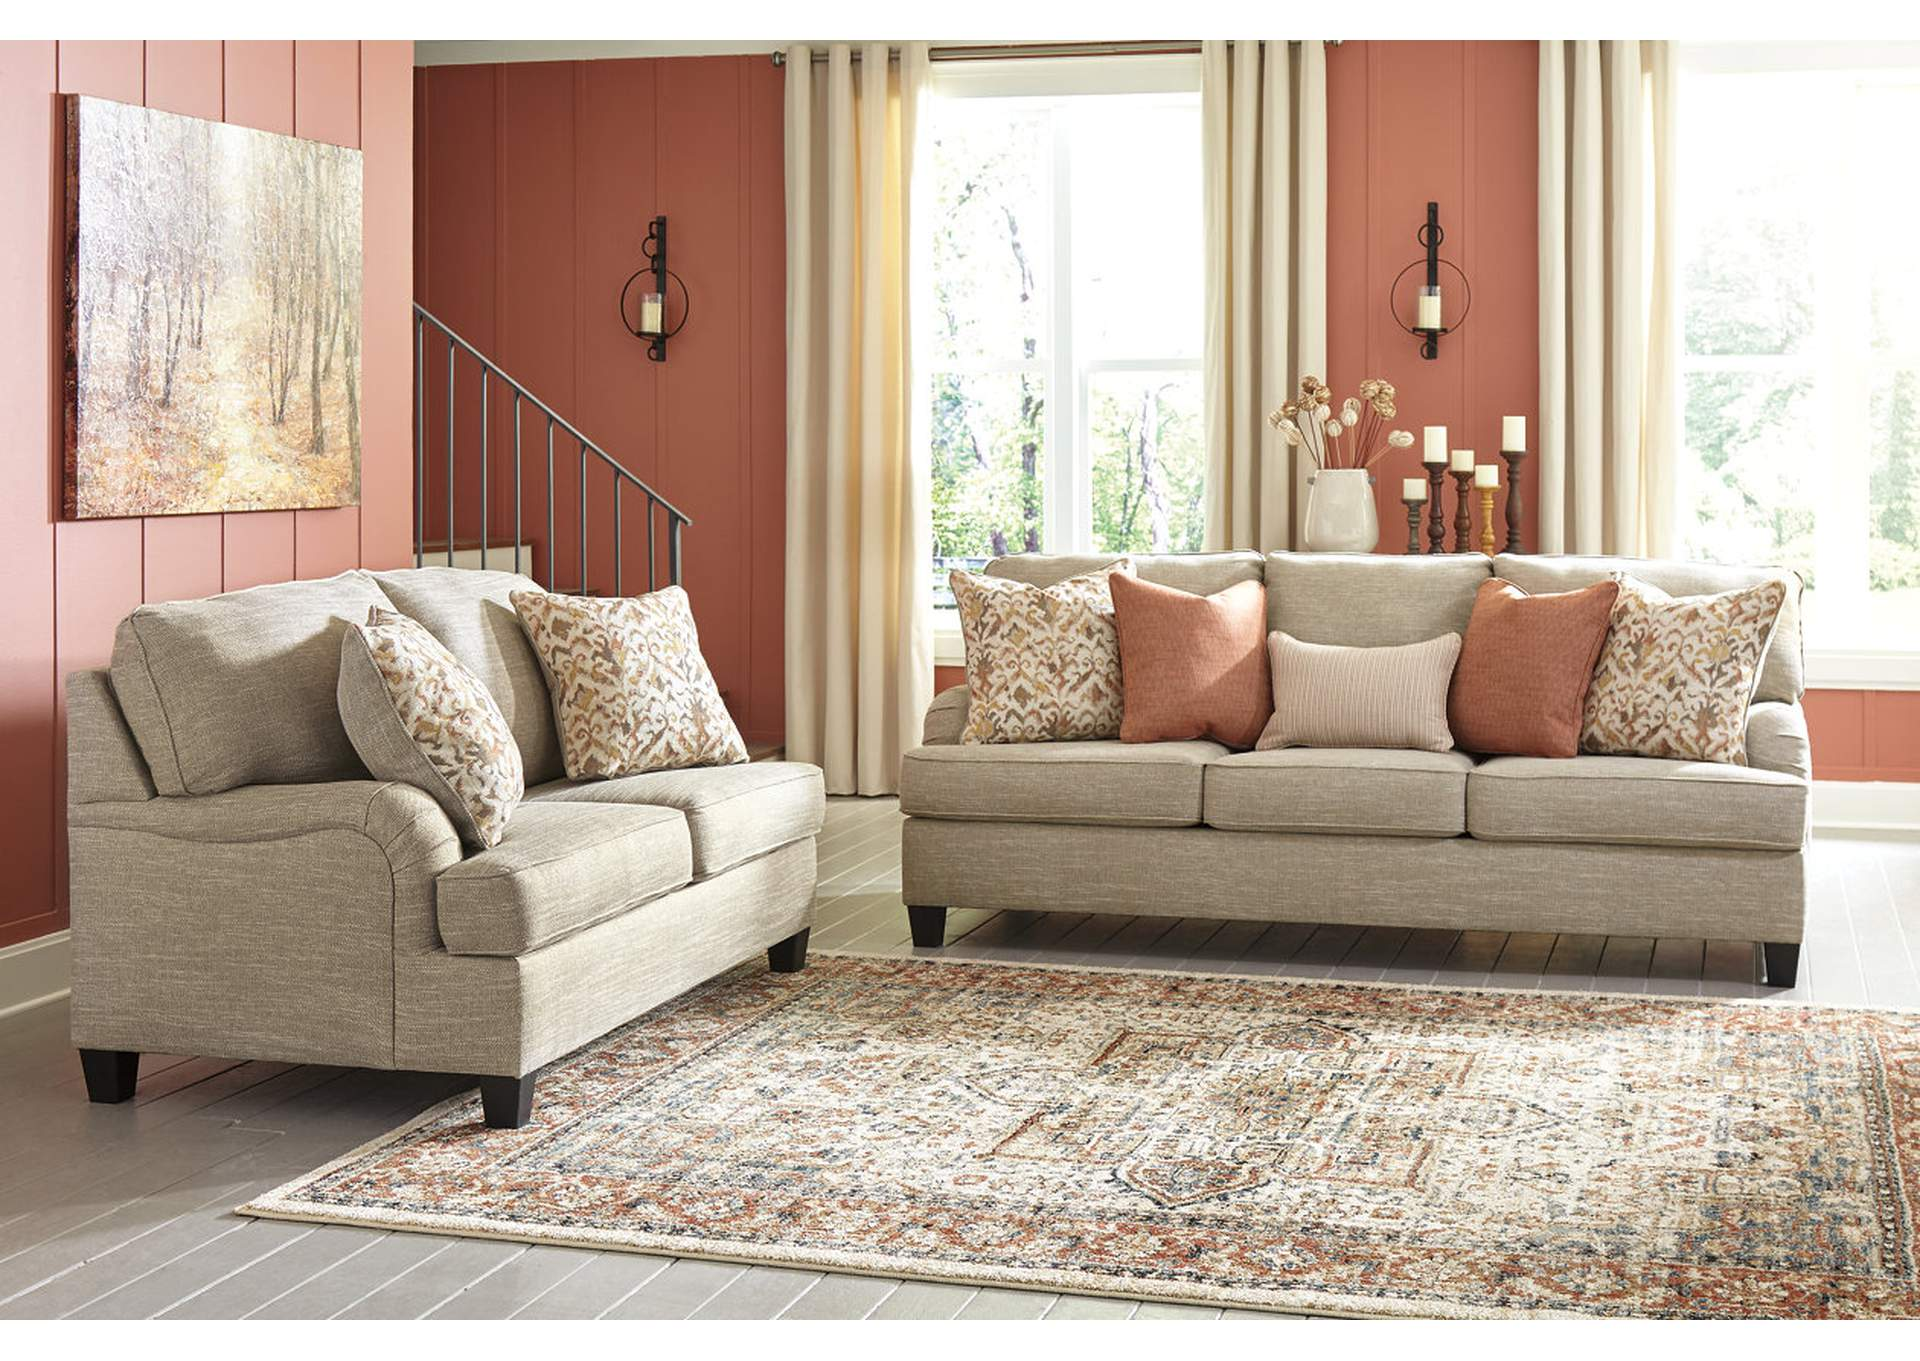 Almanza Sofa & Loveseat,Signature Design By Ashley